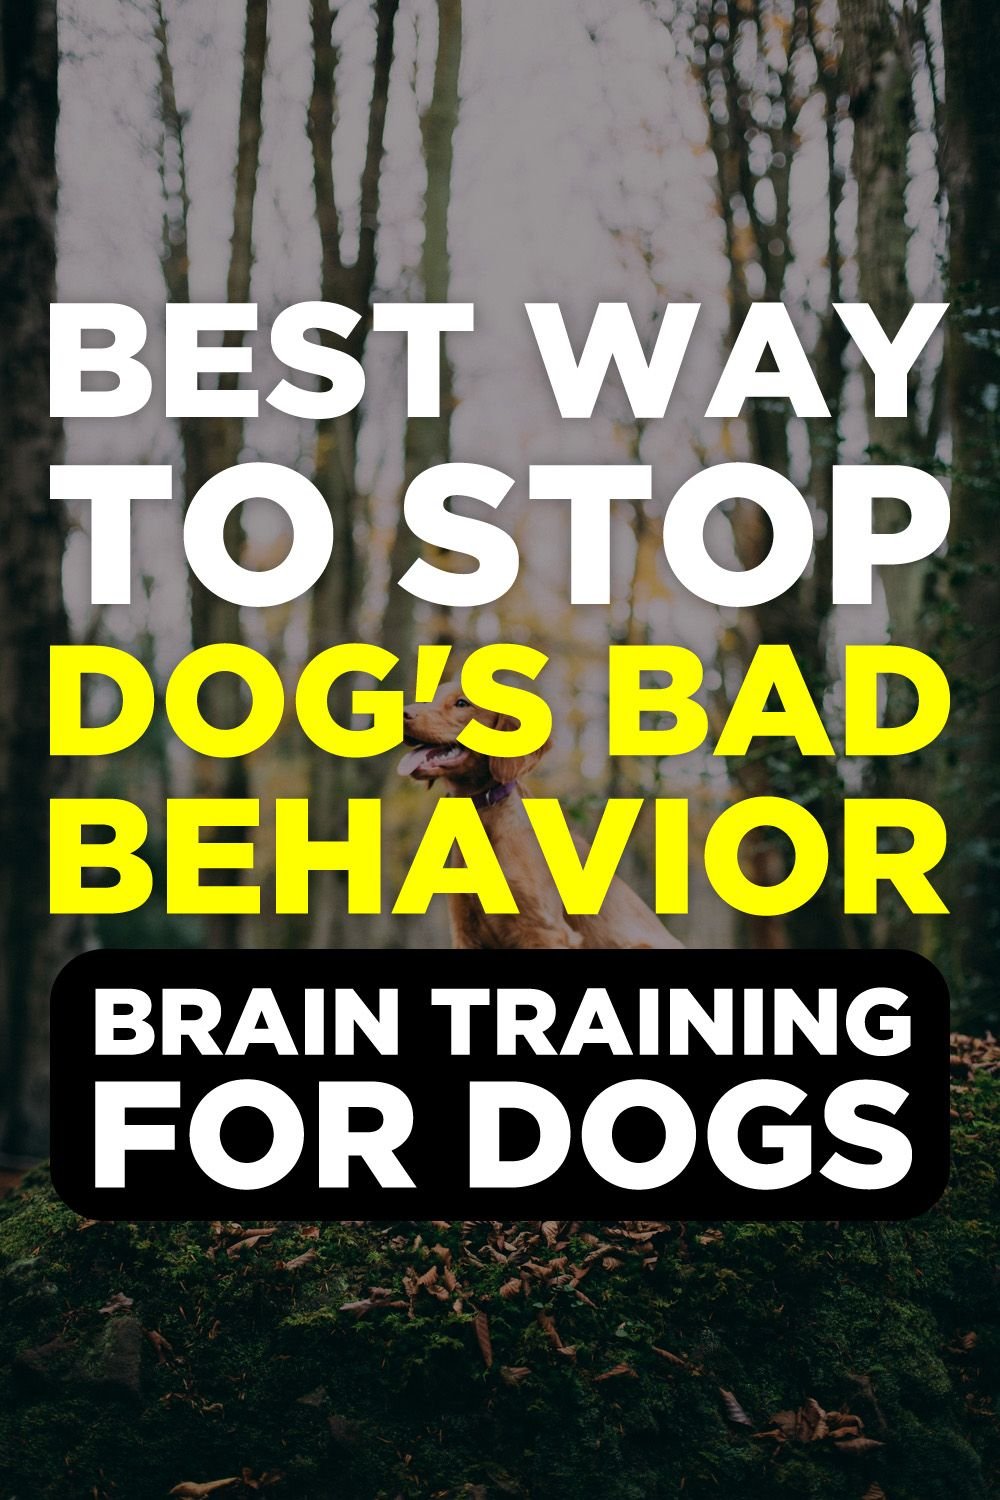 Brain training for dogs review dog training videos